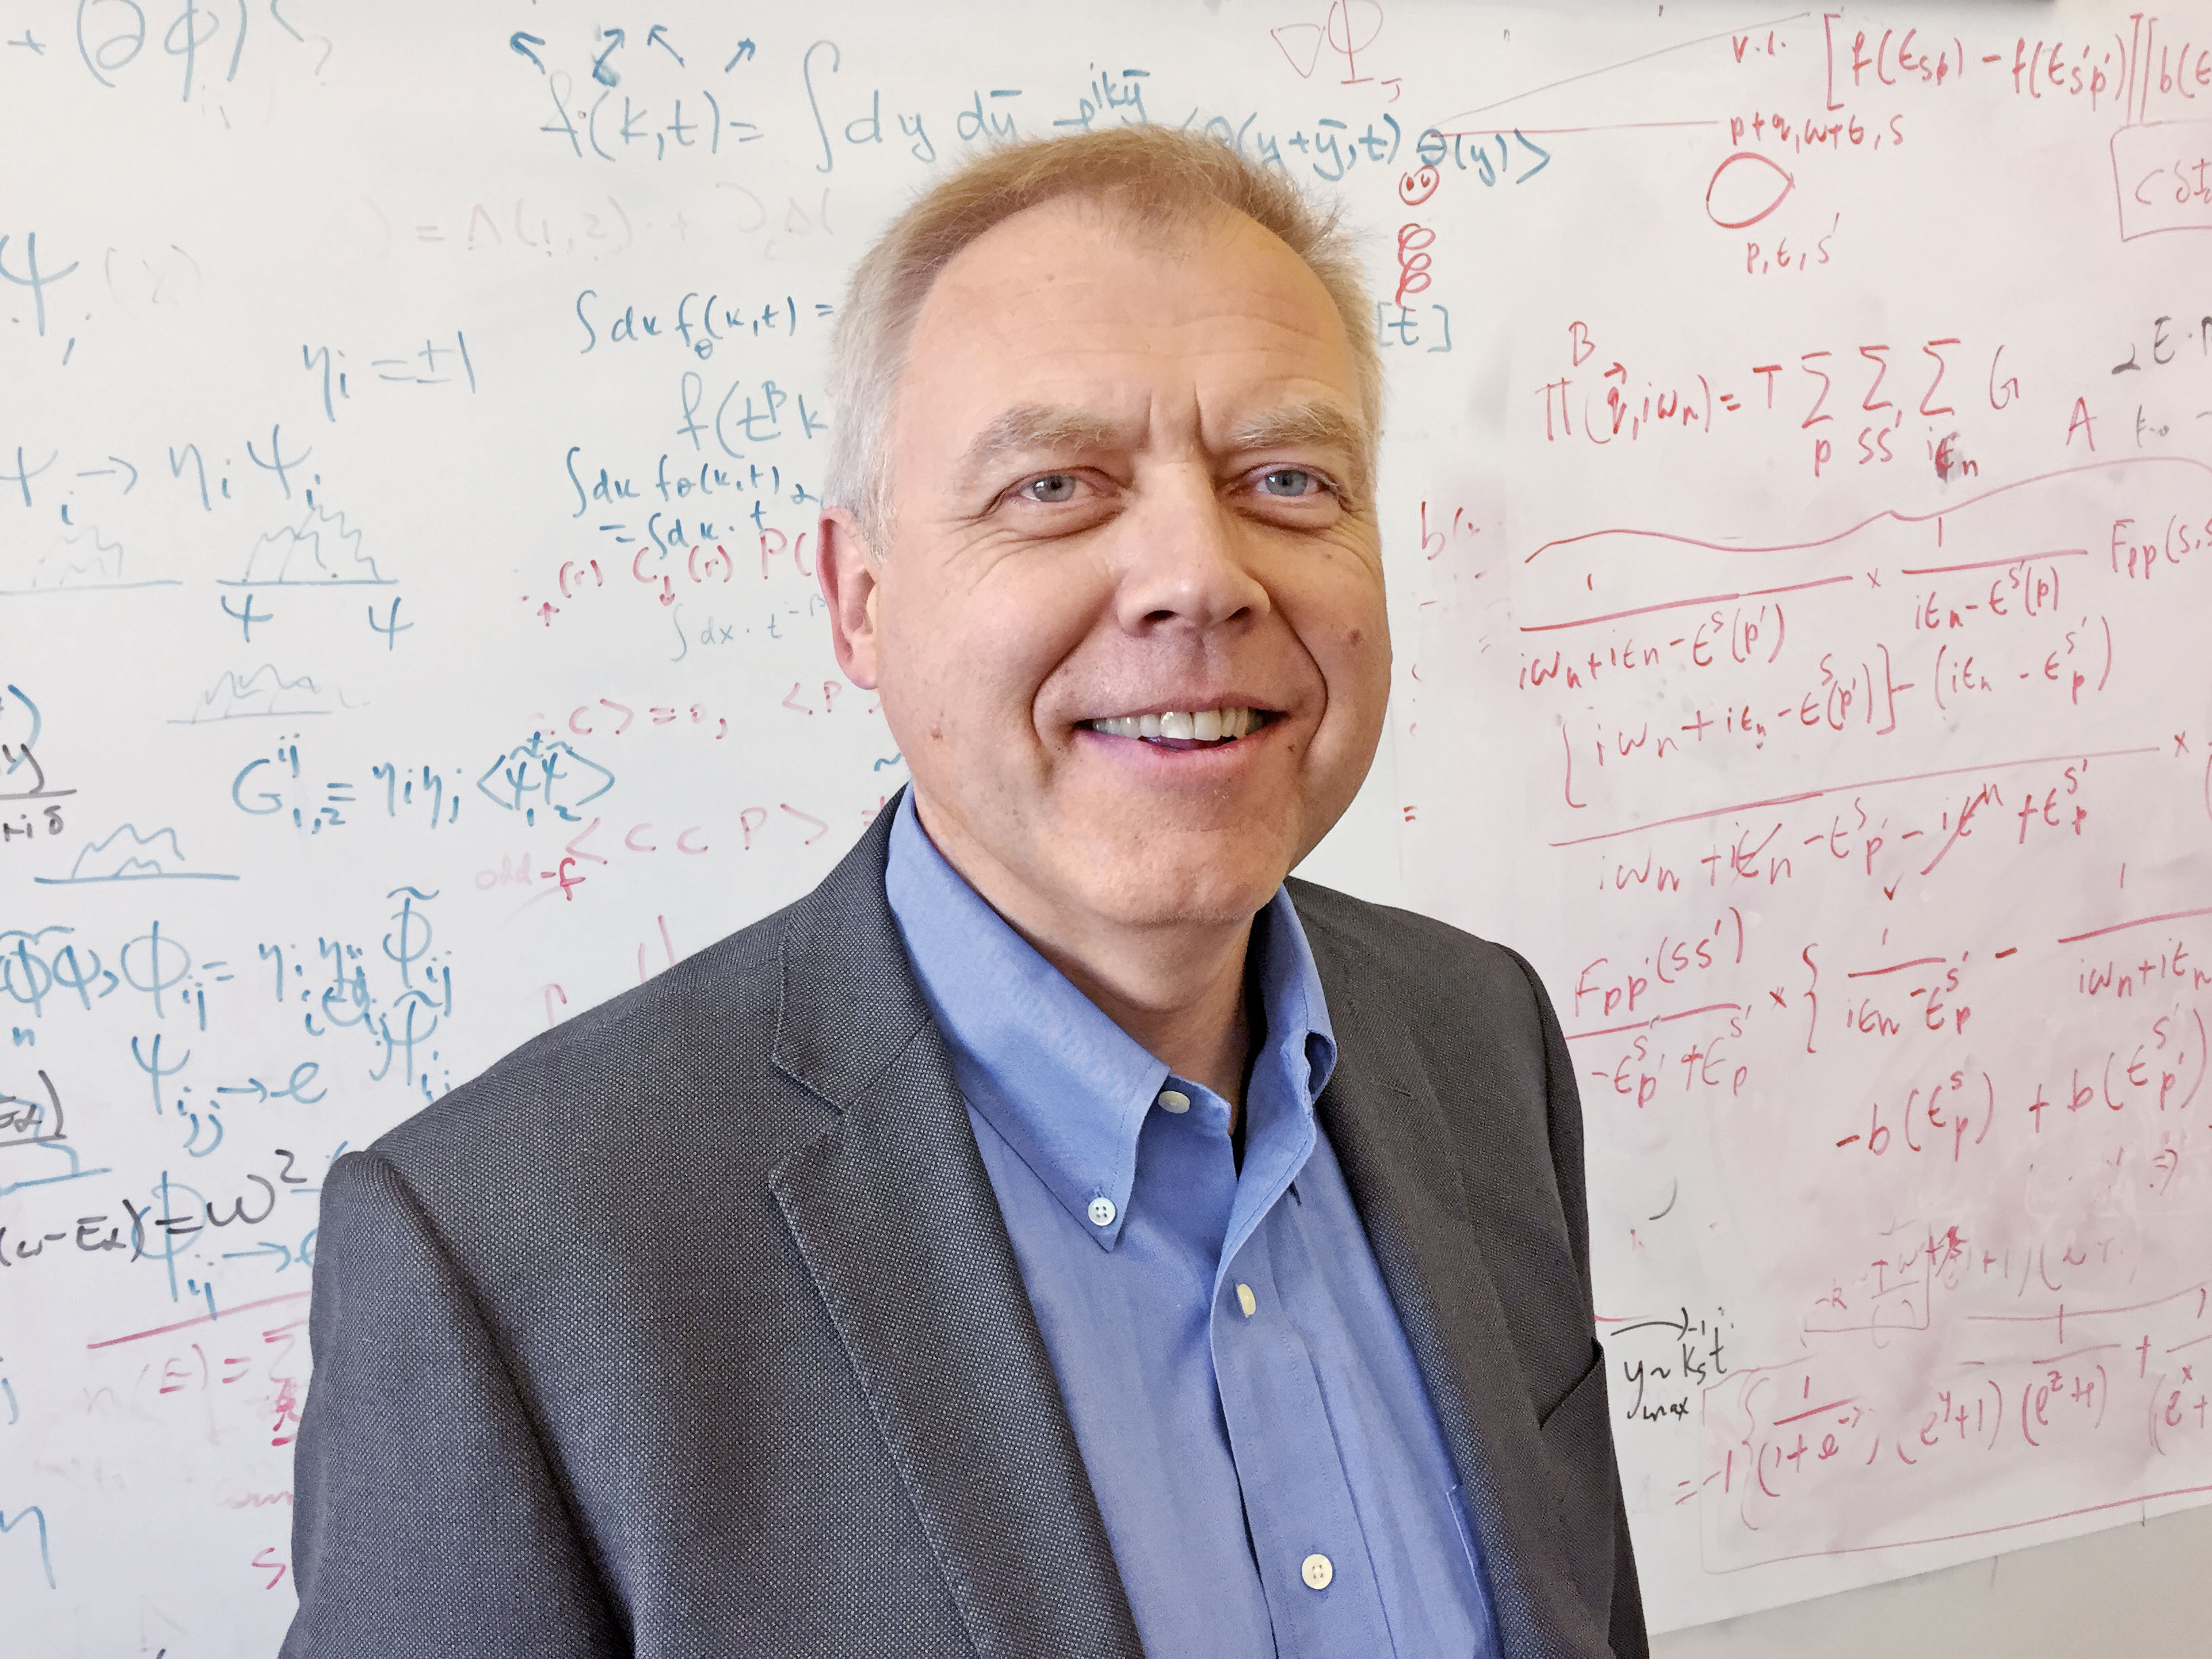 Alexander Balatsky, theoretical physicist at Nordita, Stockholm University. (Photo: Nordita/Hans von Zur-Mühlen, Nordita/Bart Olsthoorn)